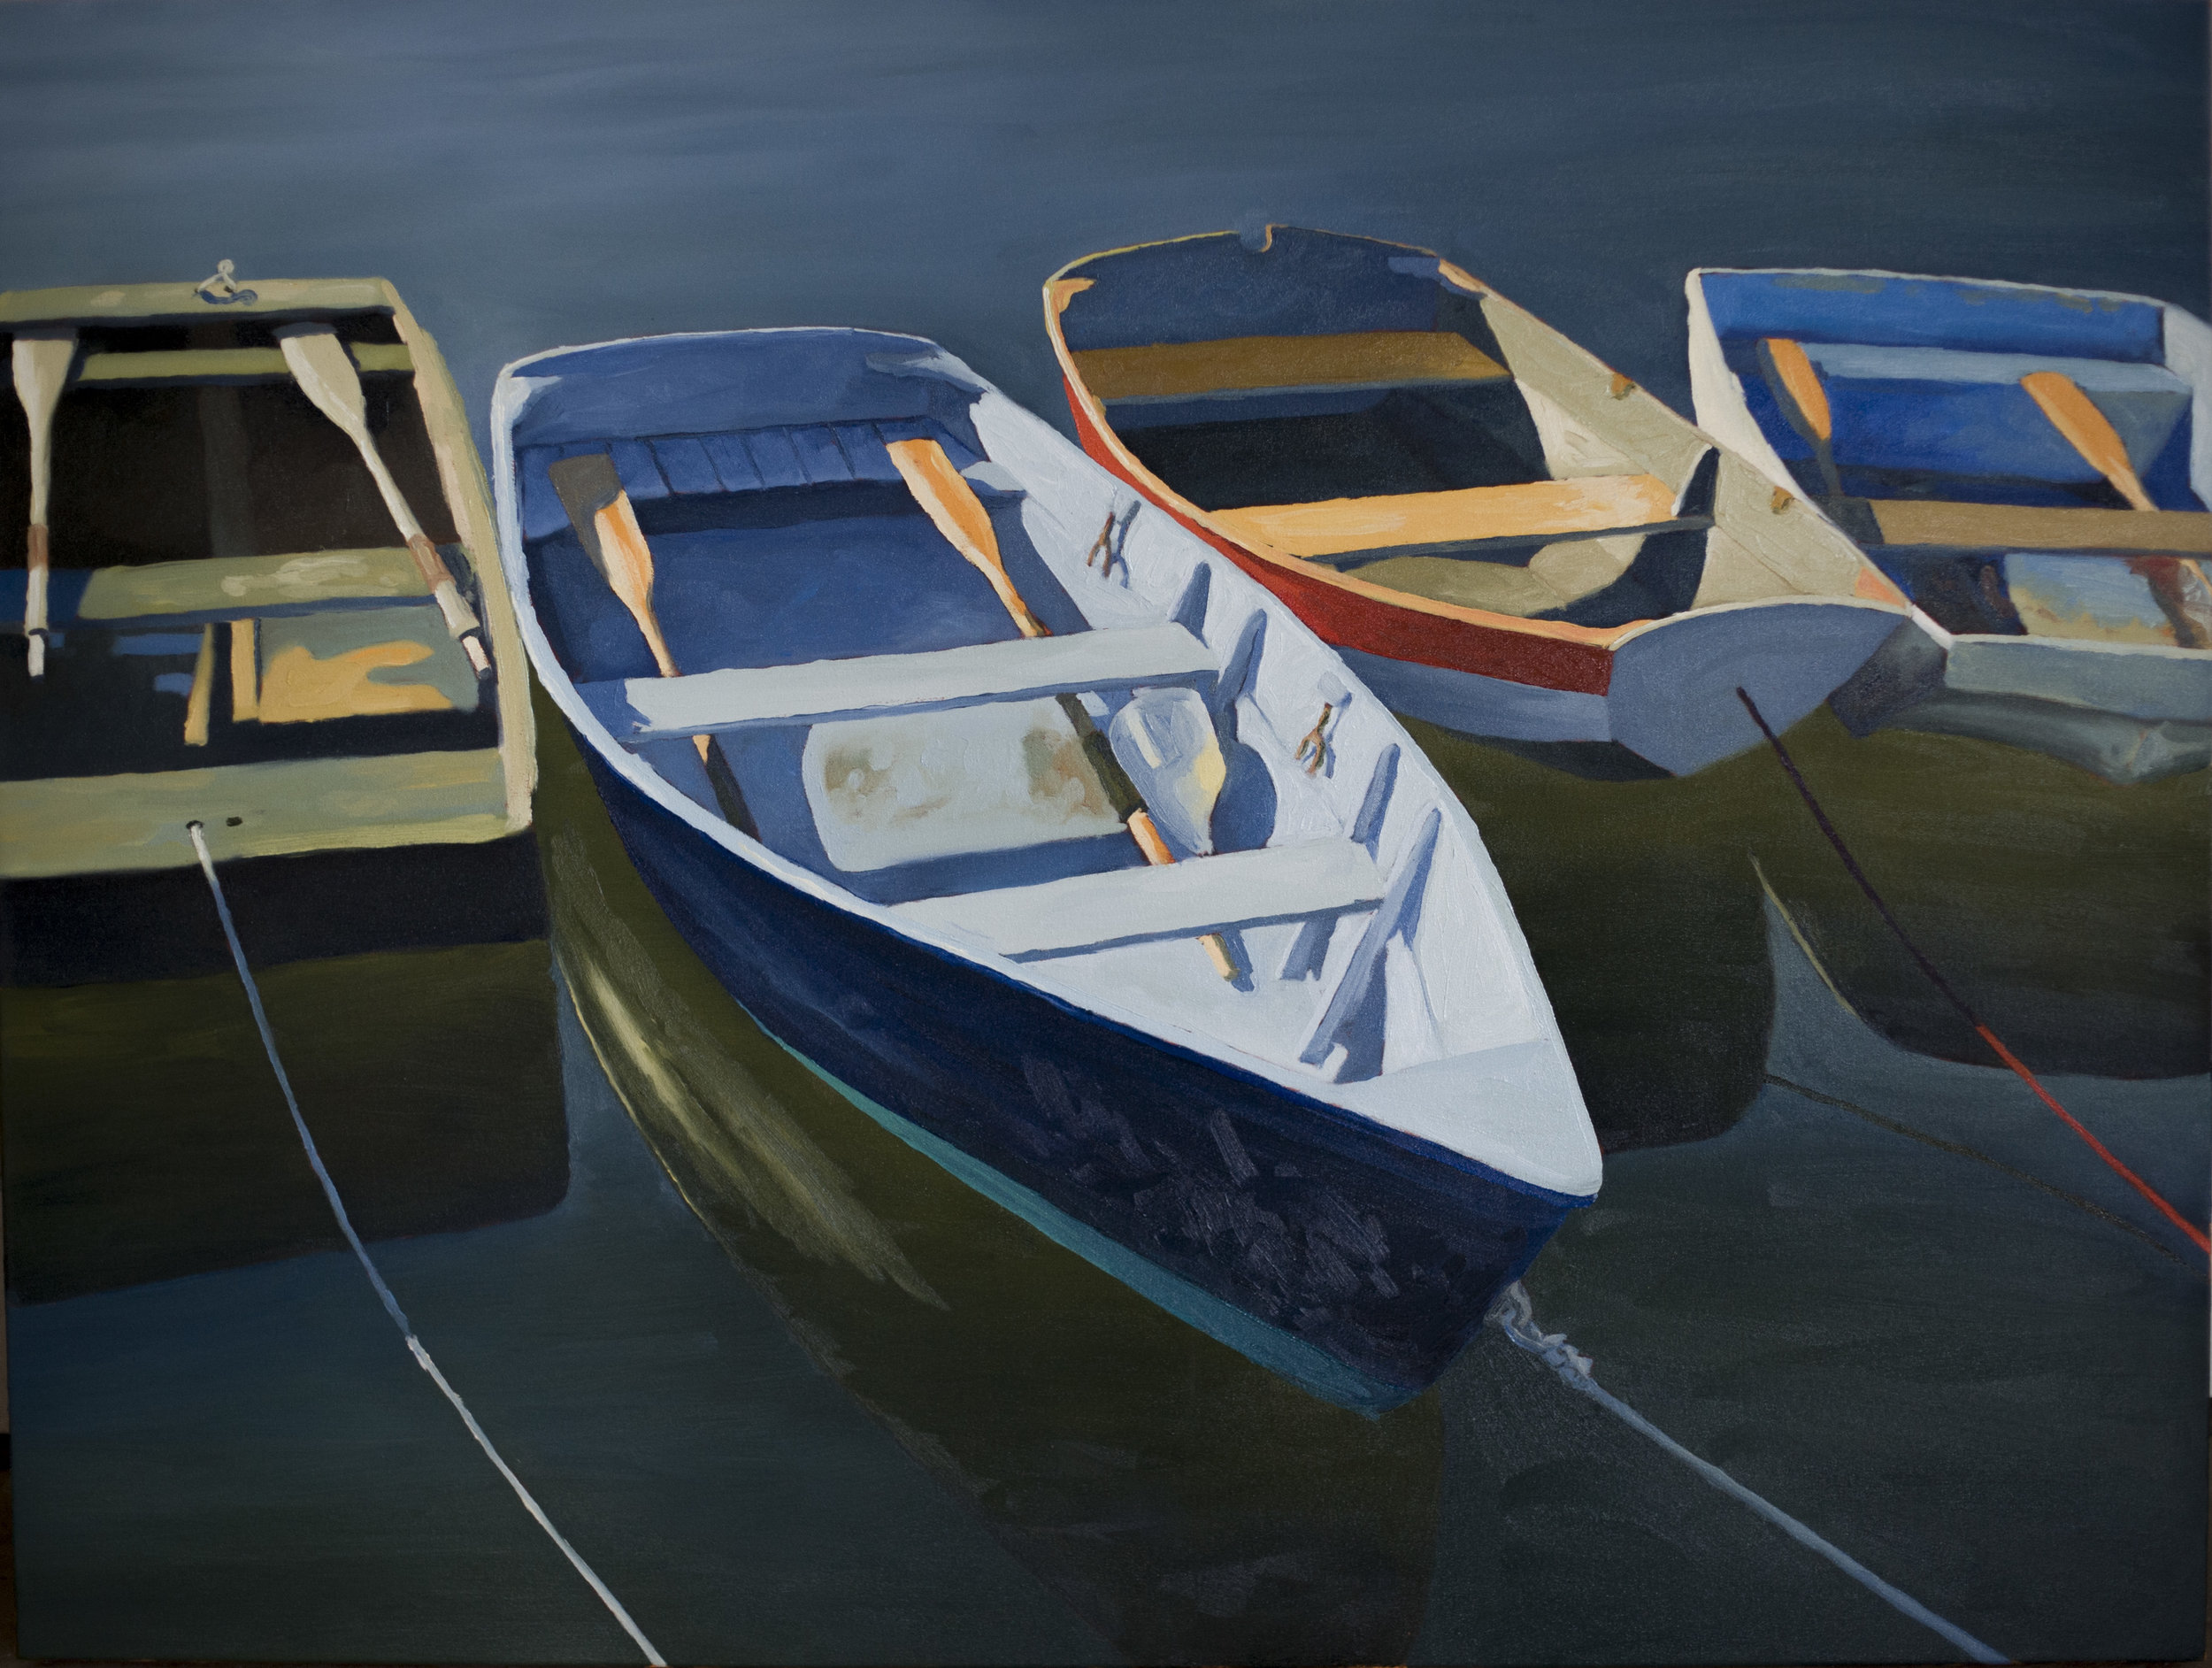 Hanging Dinghies